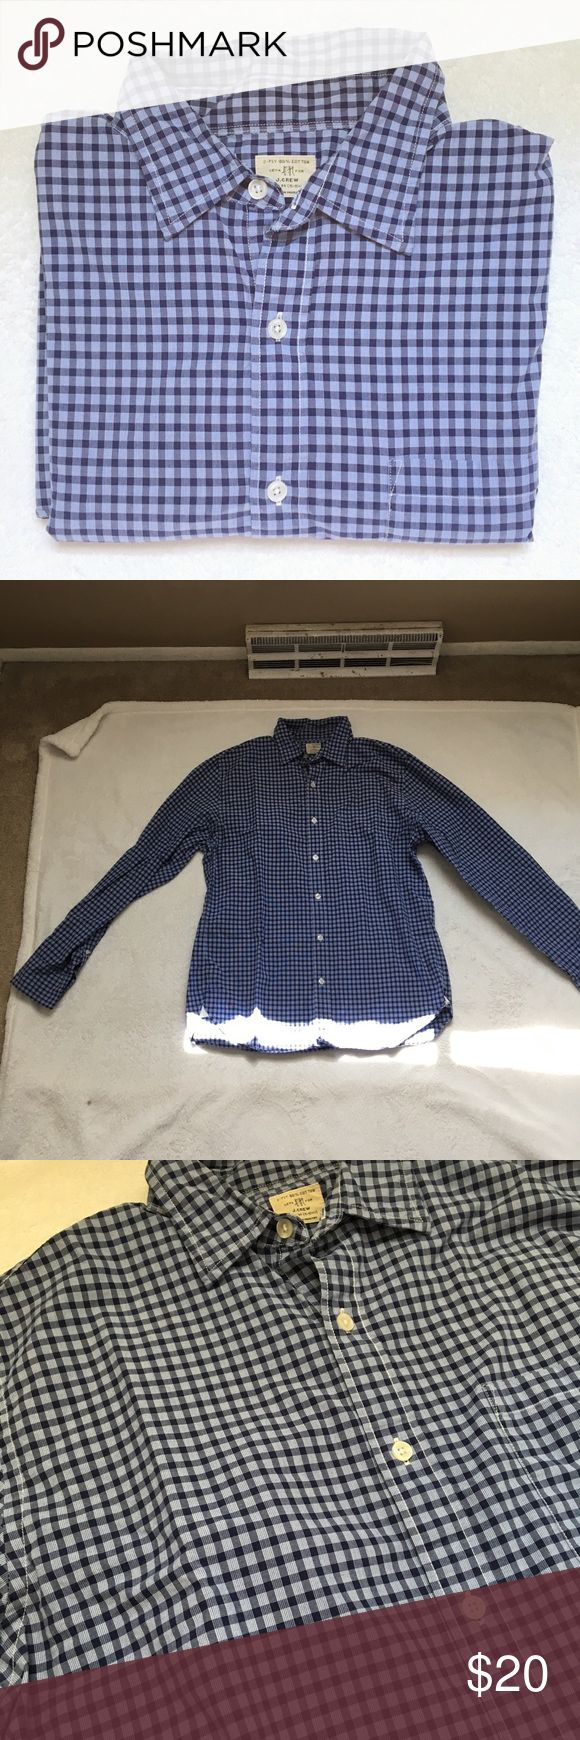 men's j crew button down J Crew men's shirt in blue checked plaid. Long sleeves, collar, buttons up front. Size medium (15-15 1/2 inch neck). Excellent condition! / j Crew, jcrew, men, men's, shirt, plaid, check, blue, navy / J. Crew Shirts Casual Button Down Shirts